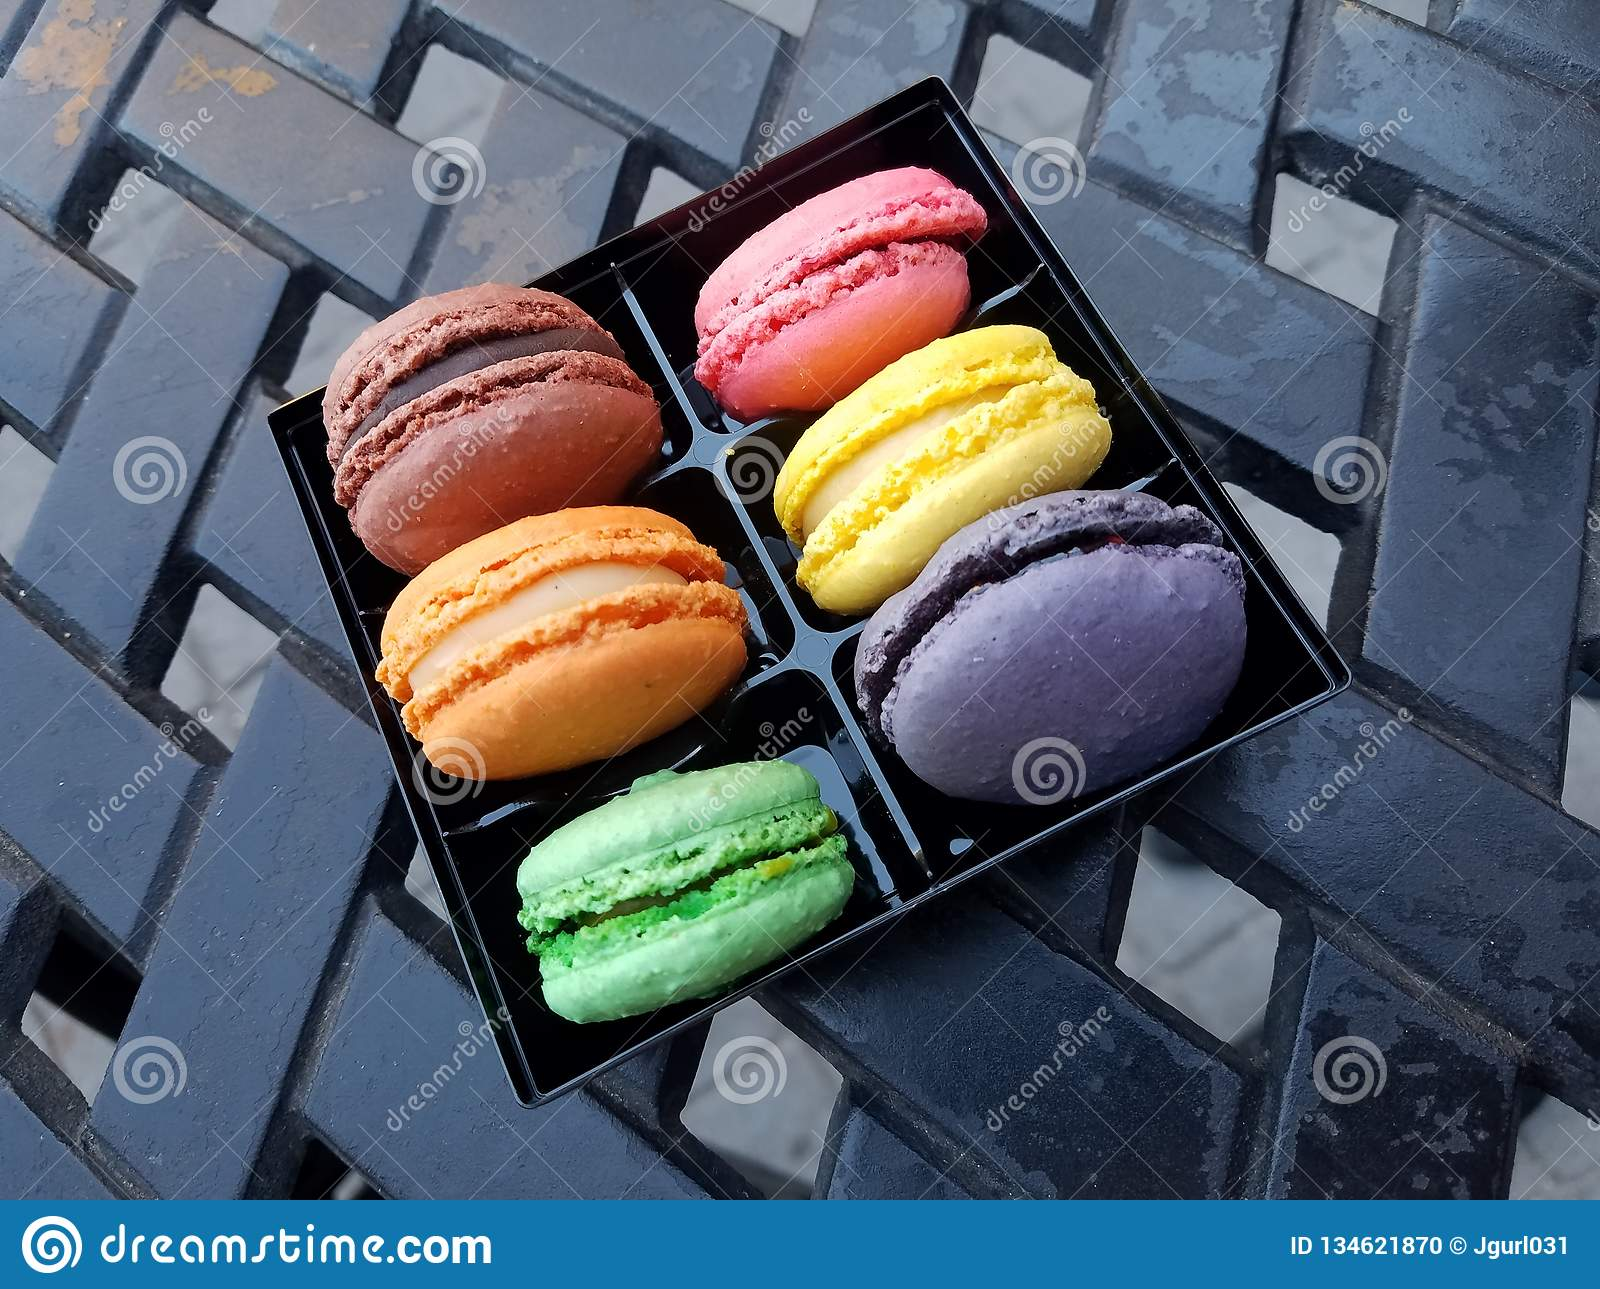 French Macroons from Local Patisserie on a Patio Table